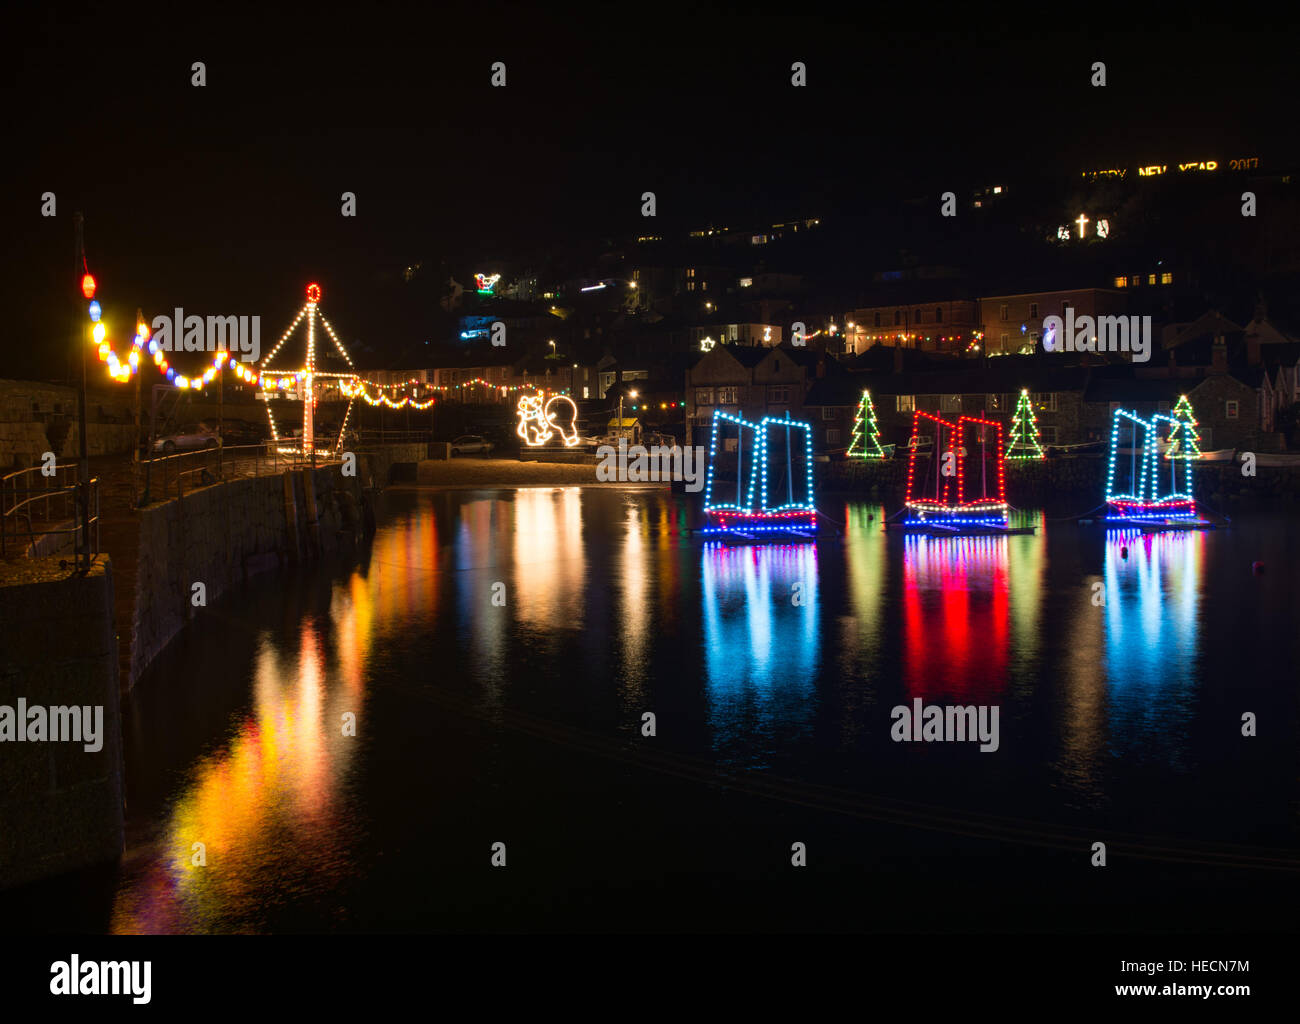 Mousehole, Cornwall, UK. 19th December 2016. The Mousehole harbour lights were turned off for an hour this evening - Stock Image